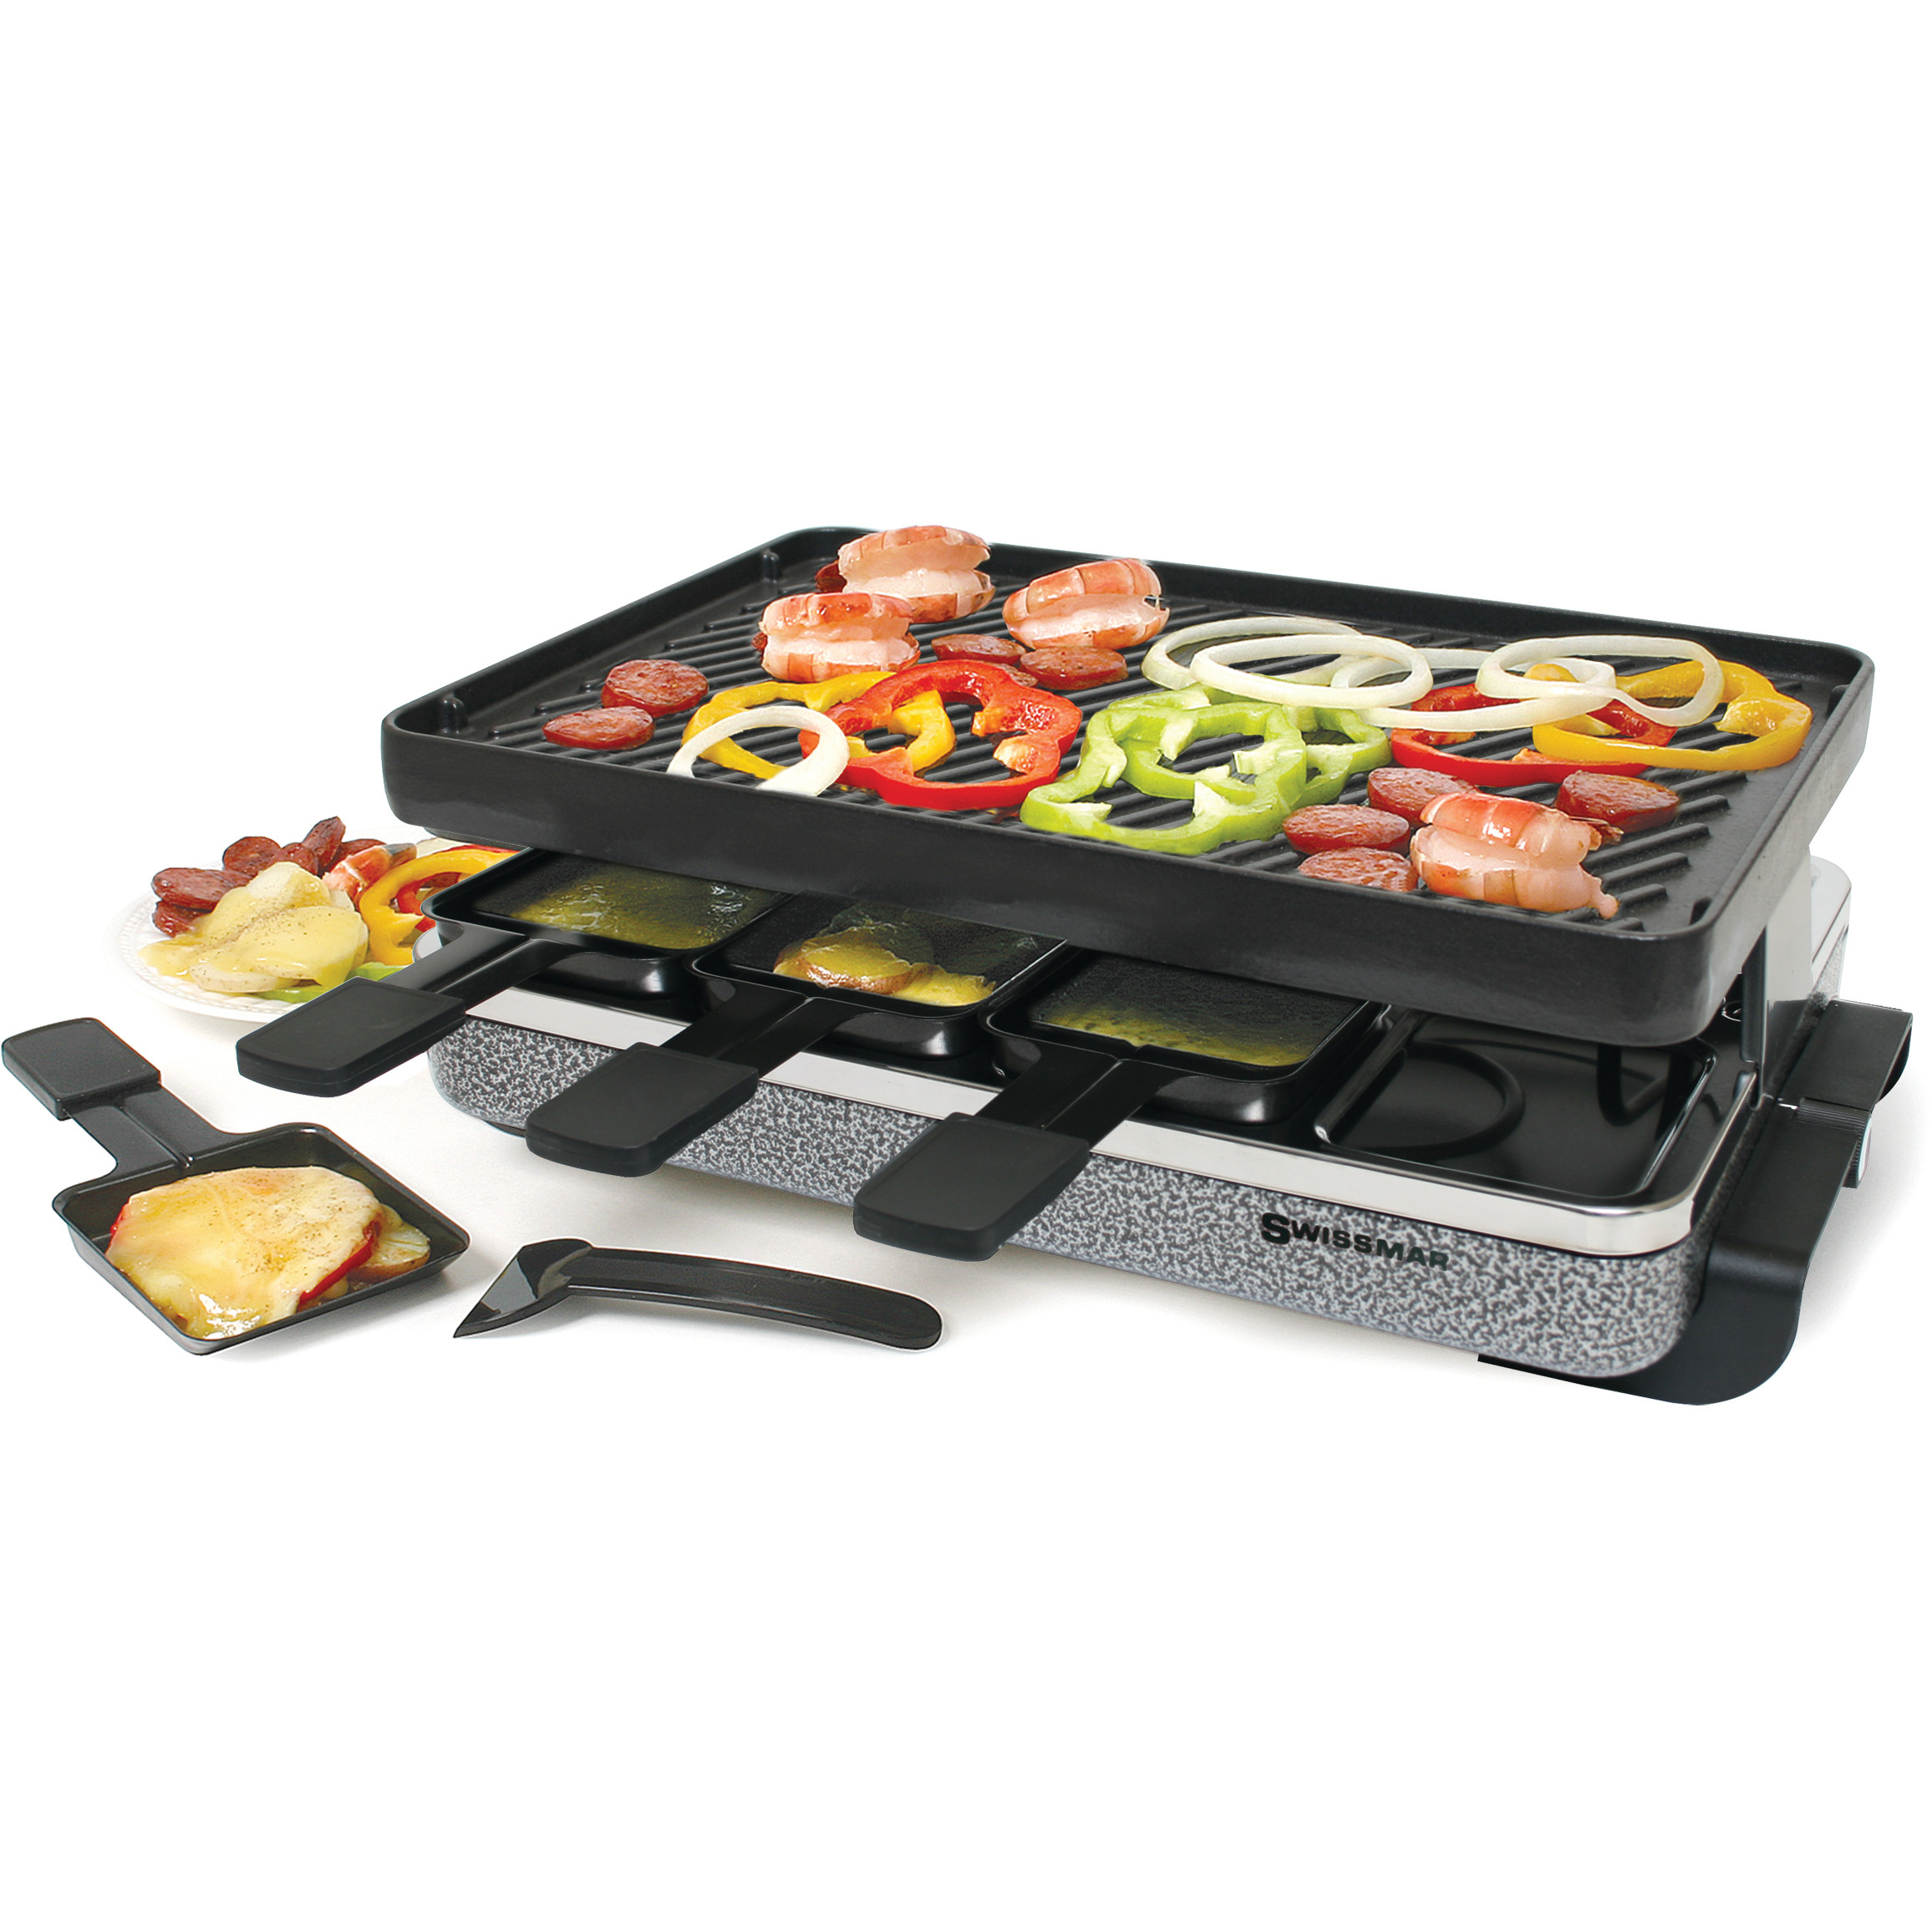 Swissmar Eiger Electric Gray Raclette Grill with Reversible Cast Iron Grill Plate